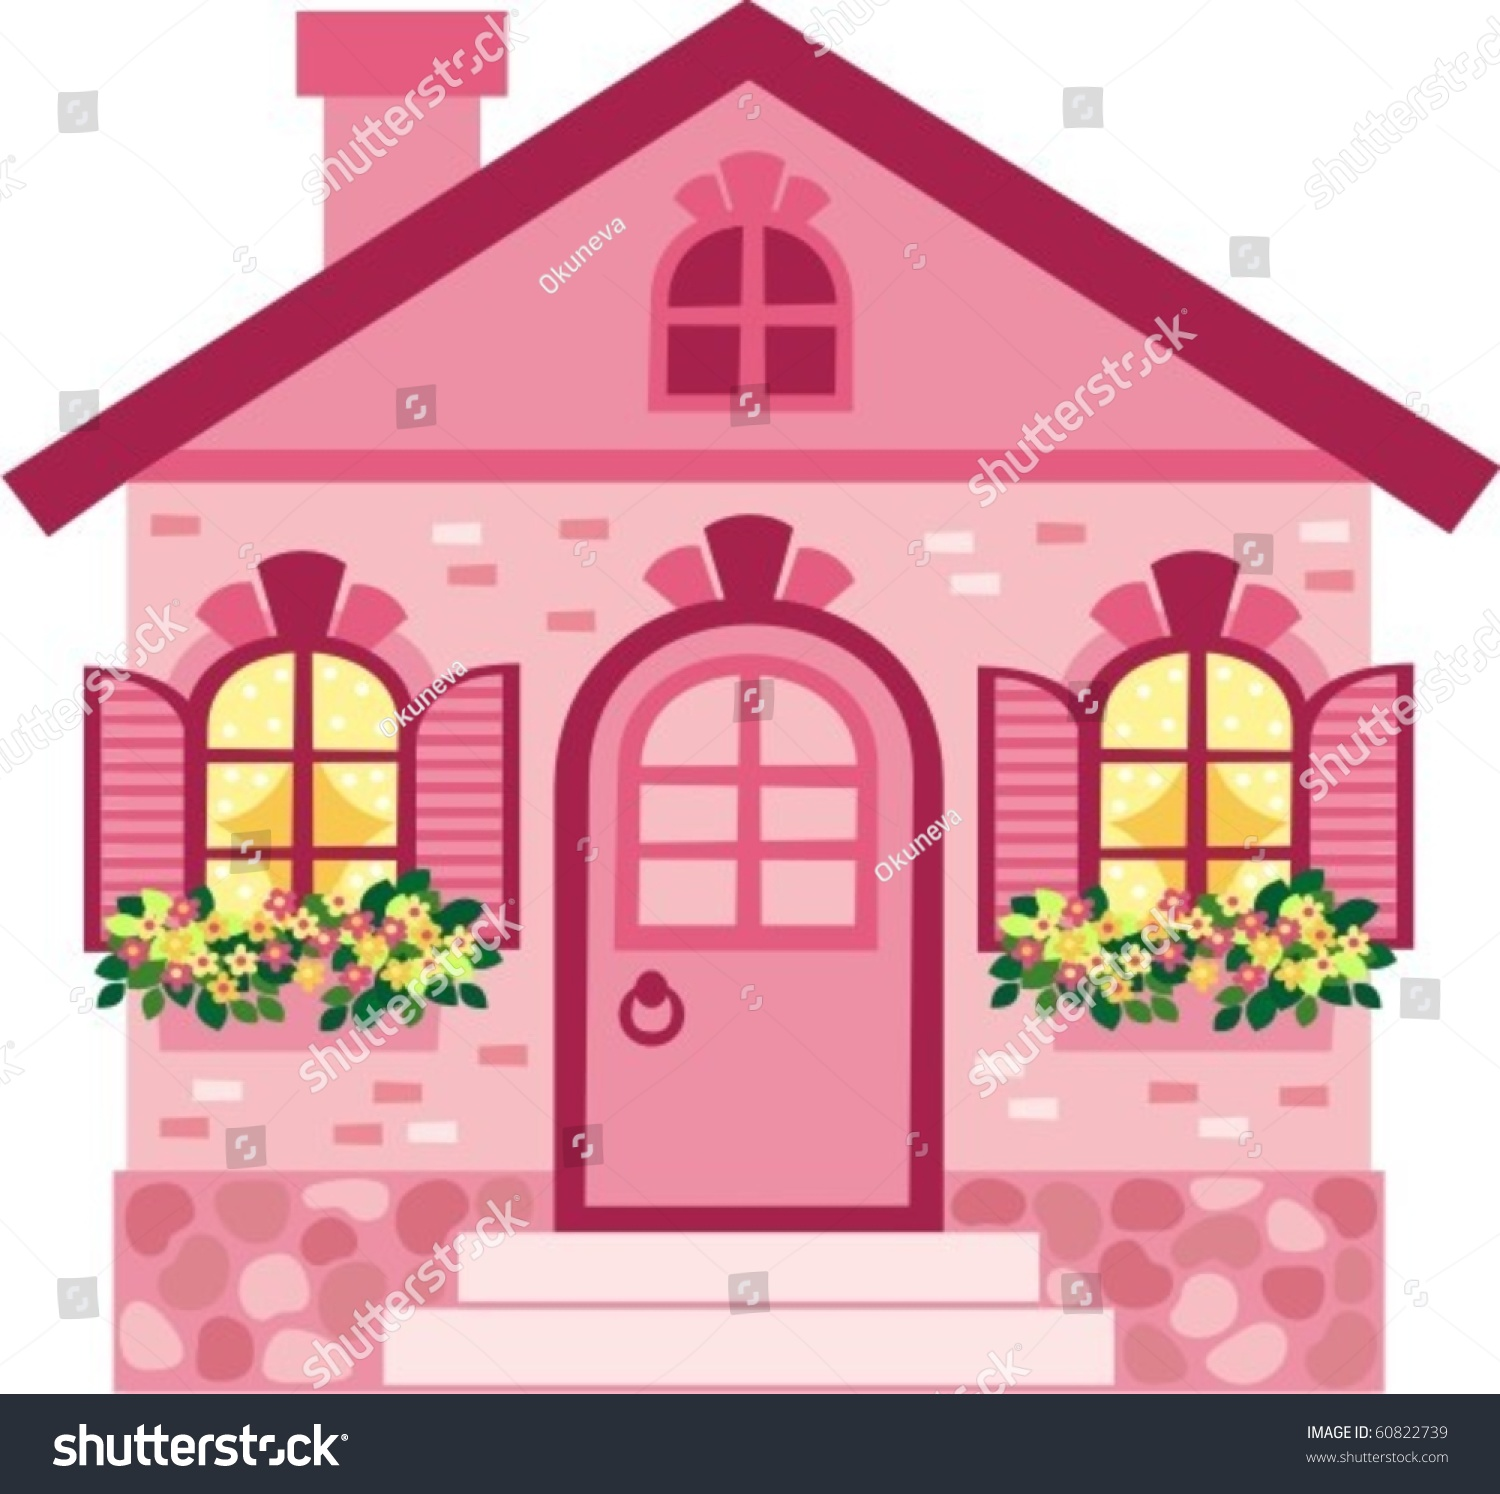 clip art brick building